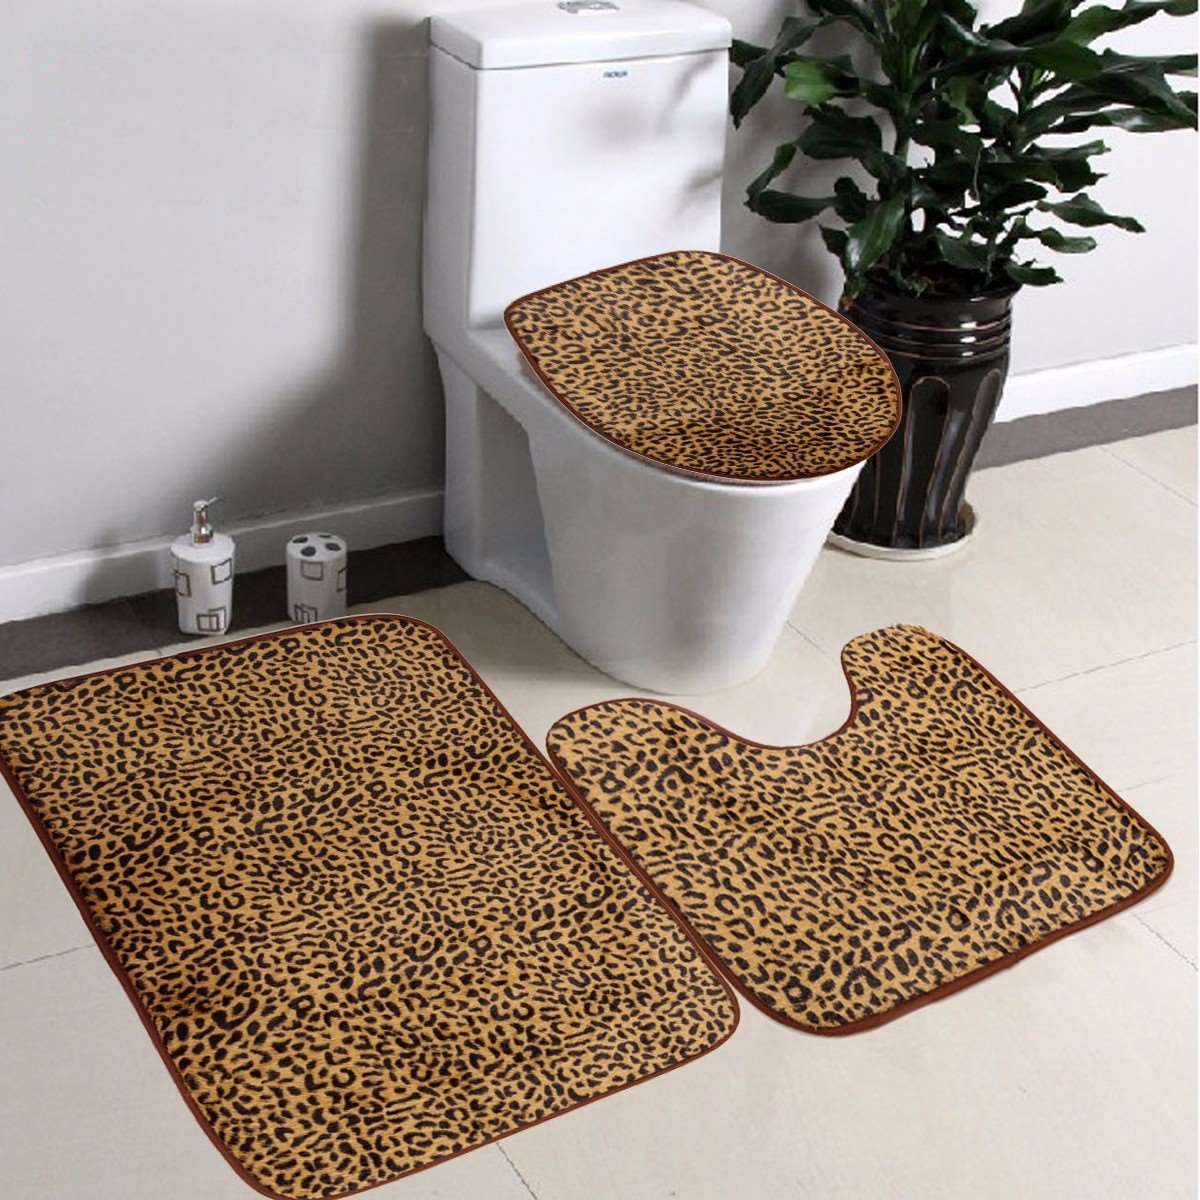 Leopard Print Bathroom Rugs Chc Homes. Leopard Bathroom Set Design  Inspirations A1houston Com